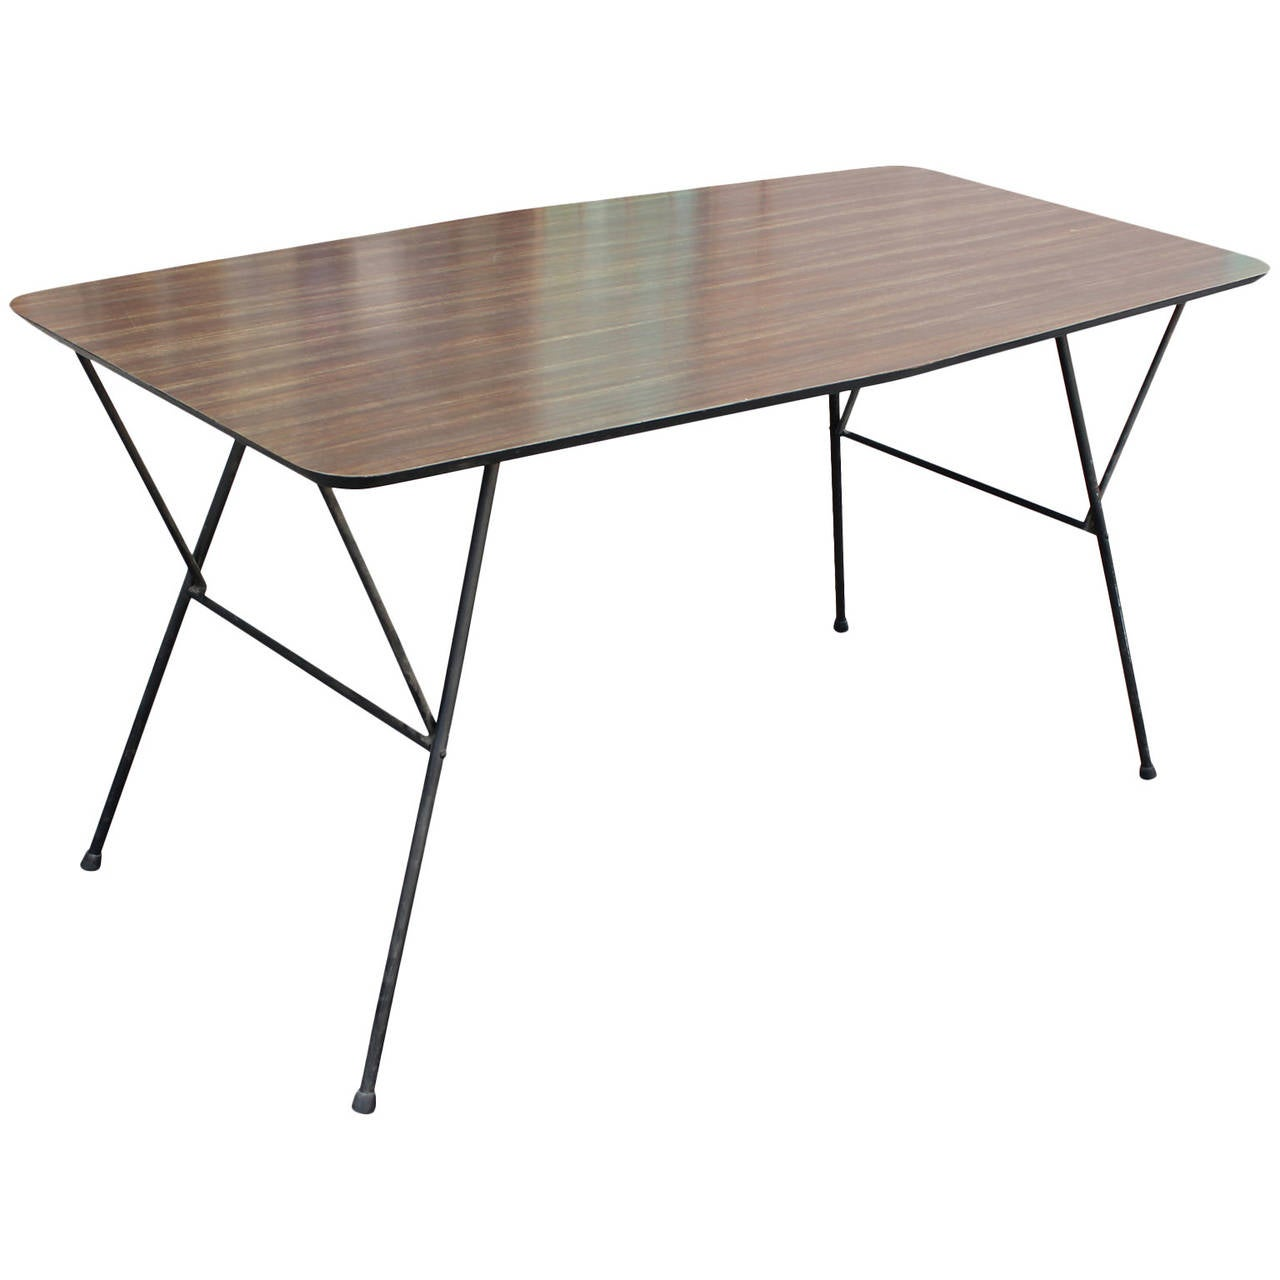 Exceptional Mid Century Modern Versi Table By Tepper/Meyer For Fred Meyer 1